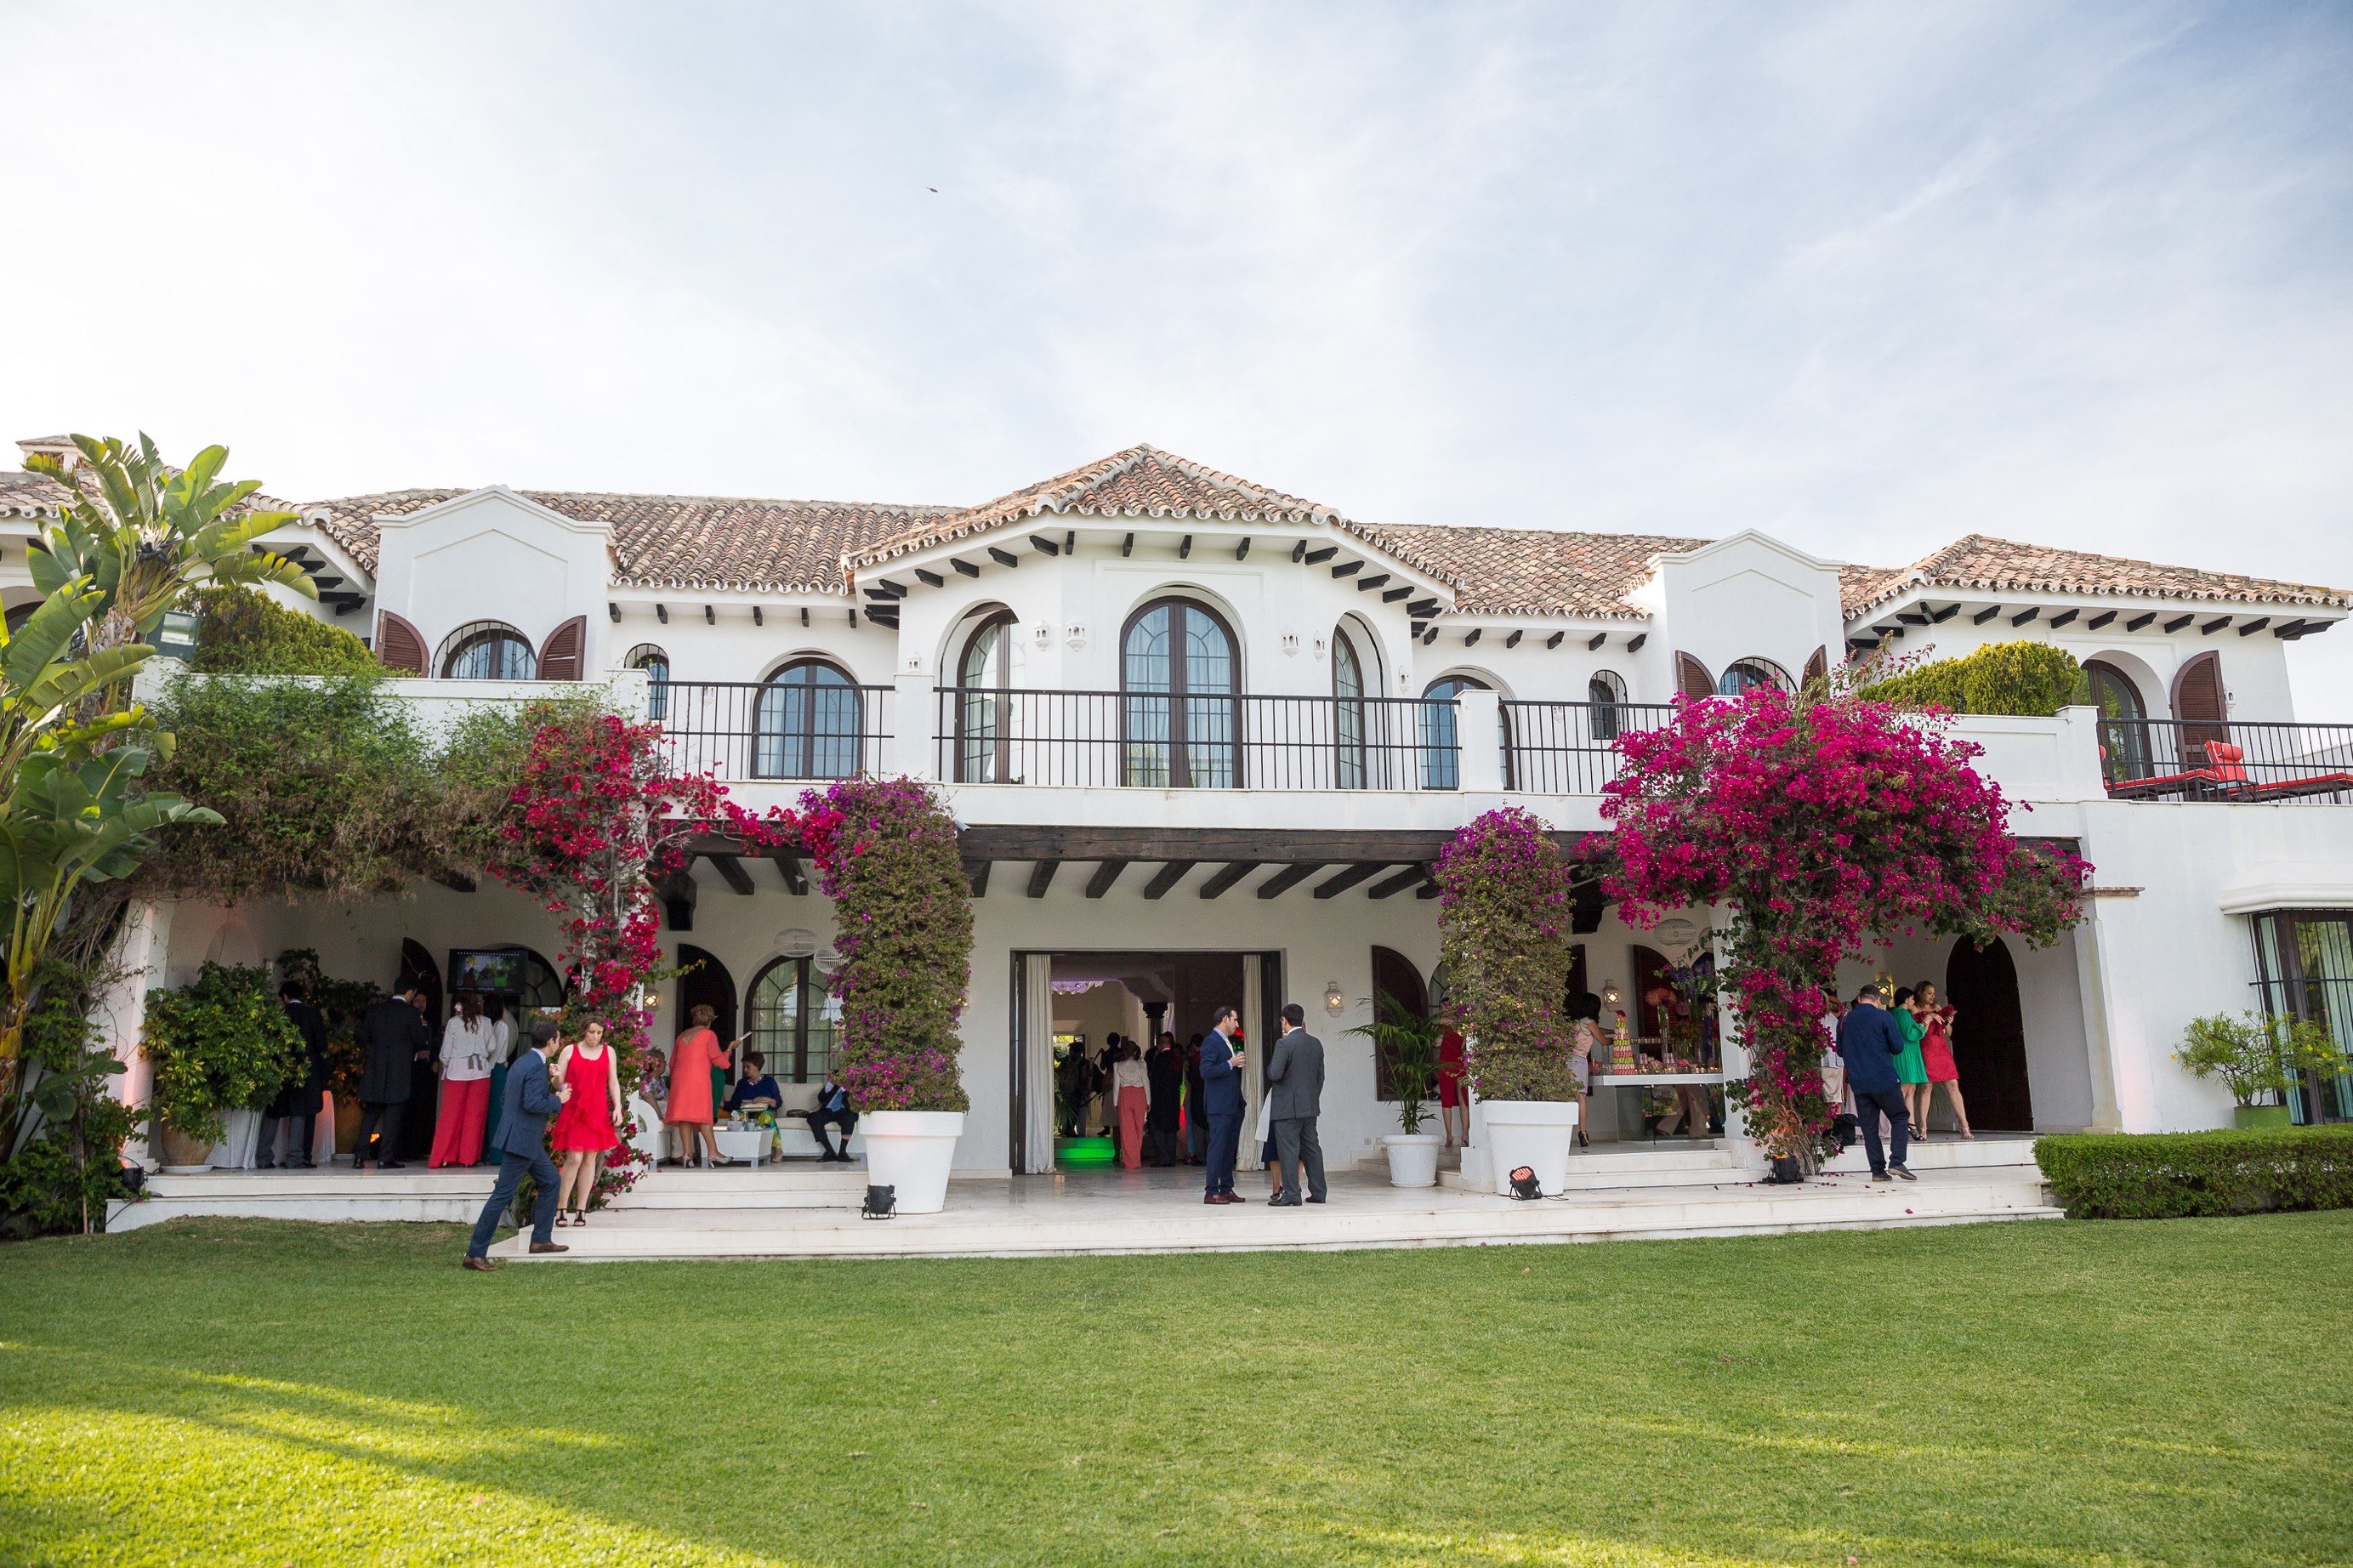 Si-Quiero-Wedding-Planners-Marbella-Isabel-Manolo-251